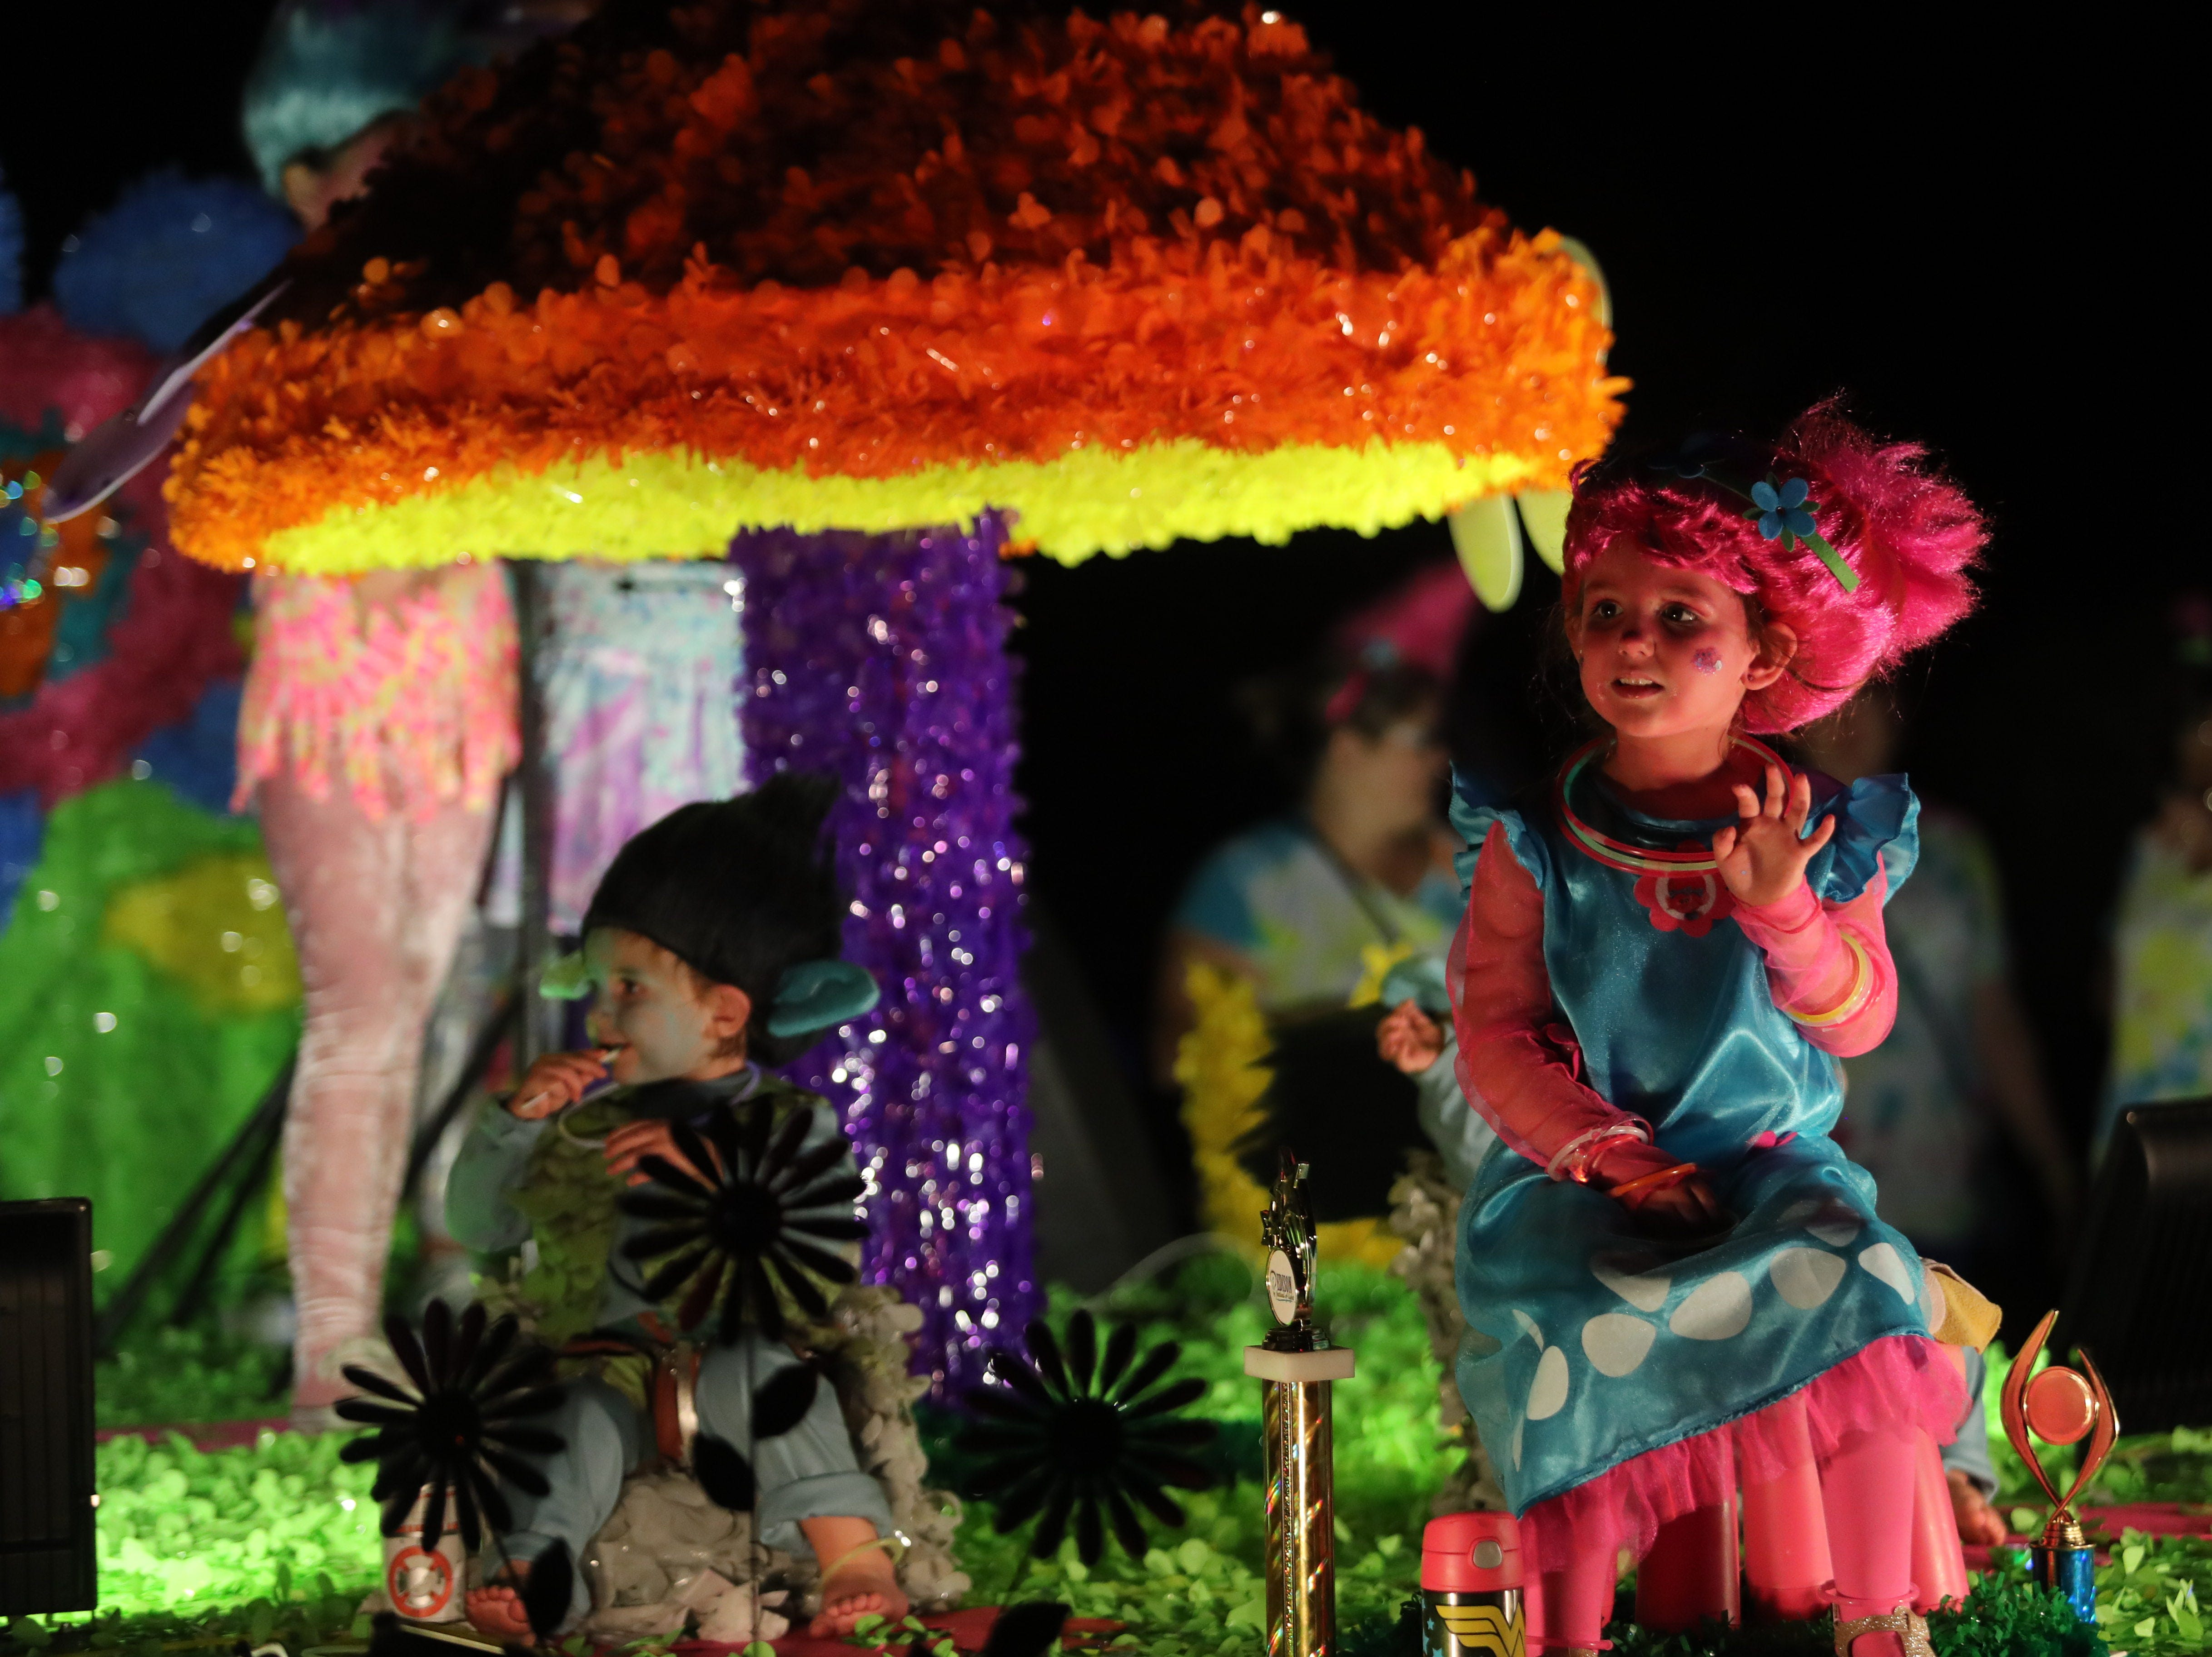 Participants in the Edison Festival of Light Grand Parade move along Cortez Boulevard in Fort Myers on Saturday, Feb. 16, 2019.